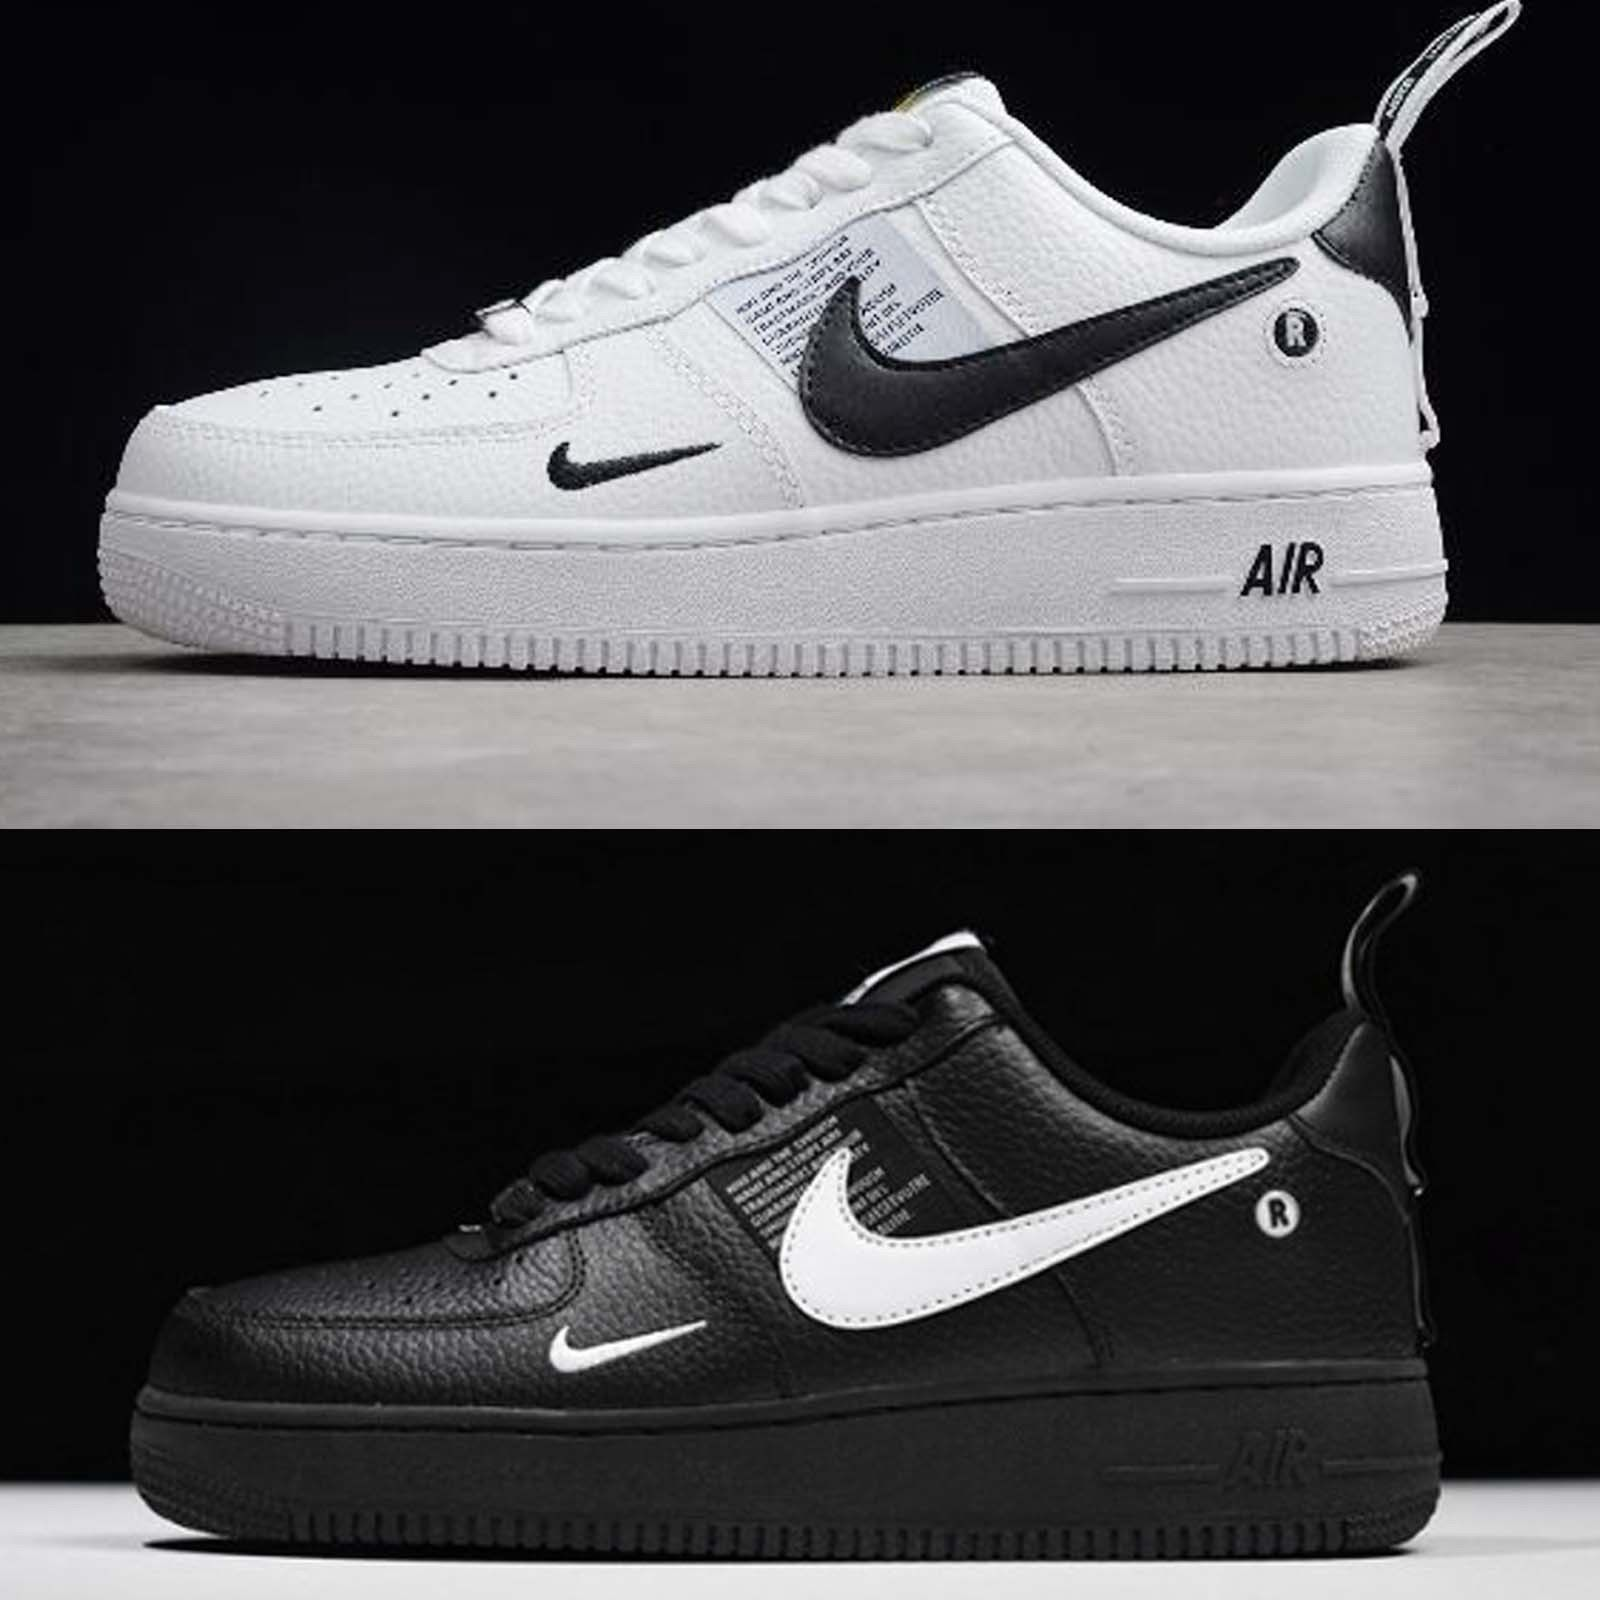 020133806820 Nike Air Force 1 07 LV8 utility back and white